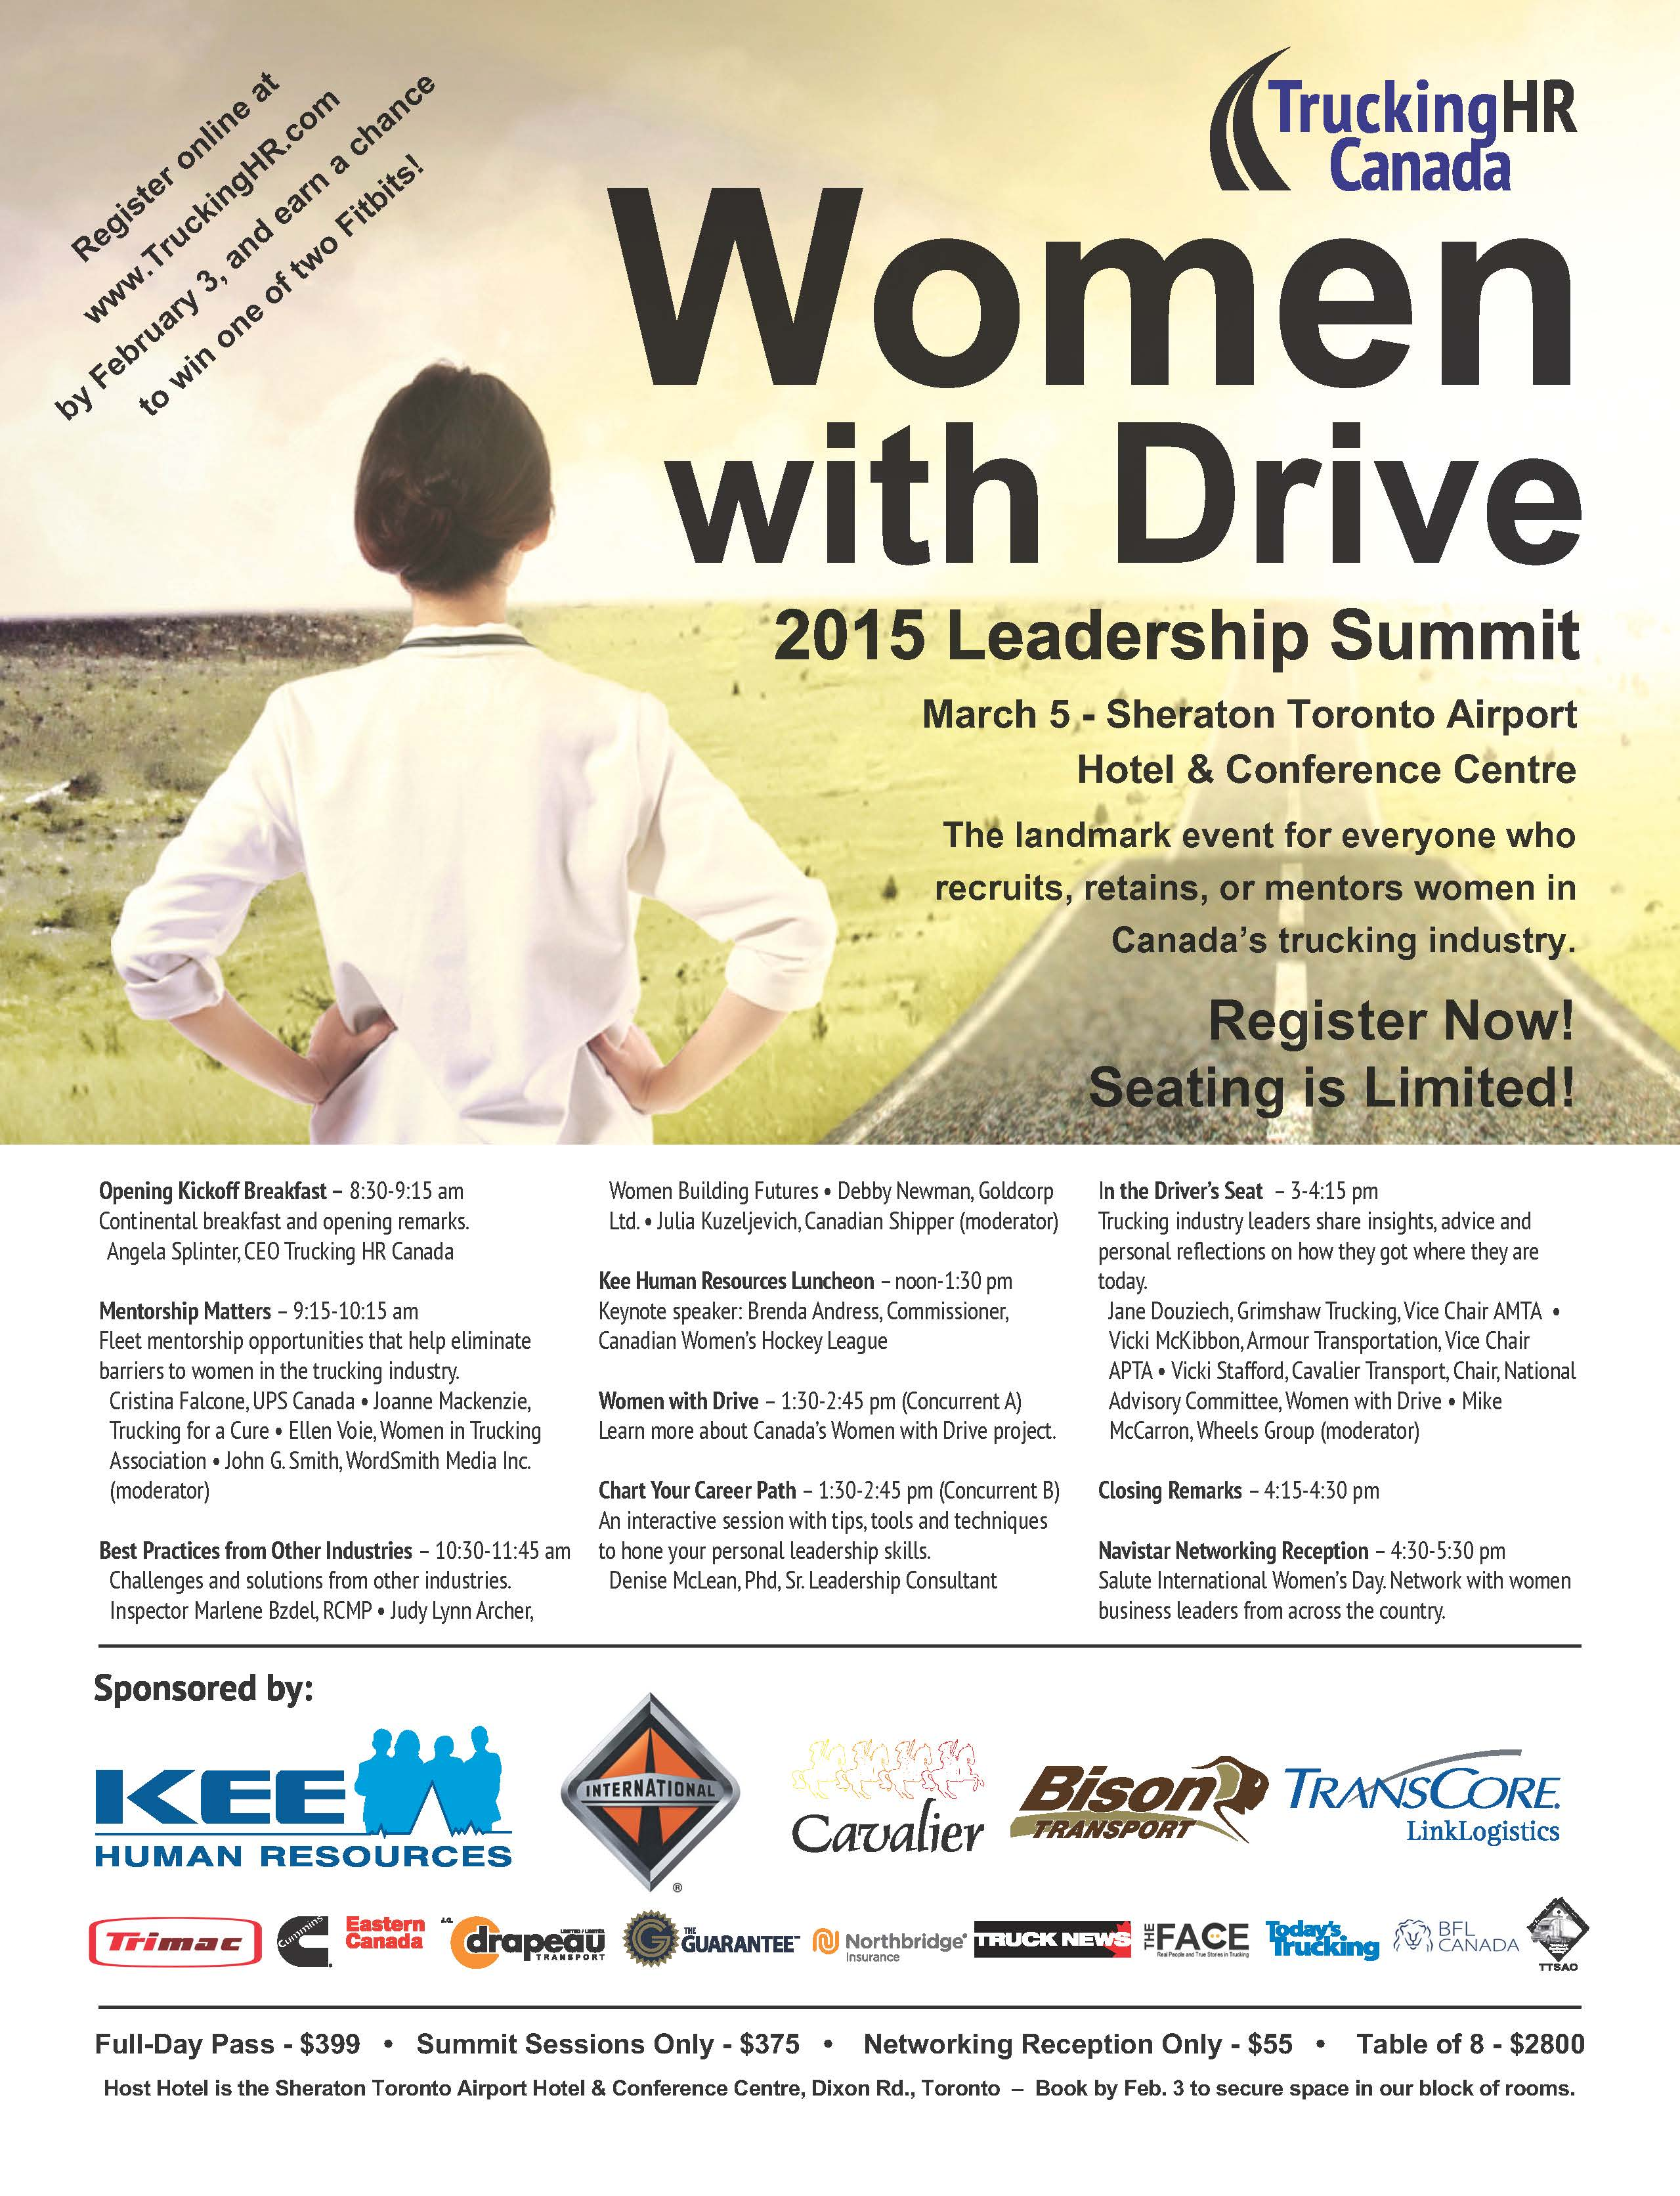 Women with Drive Summit